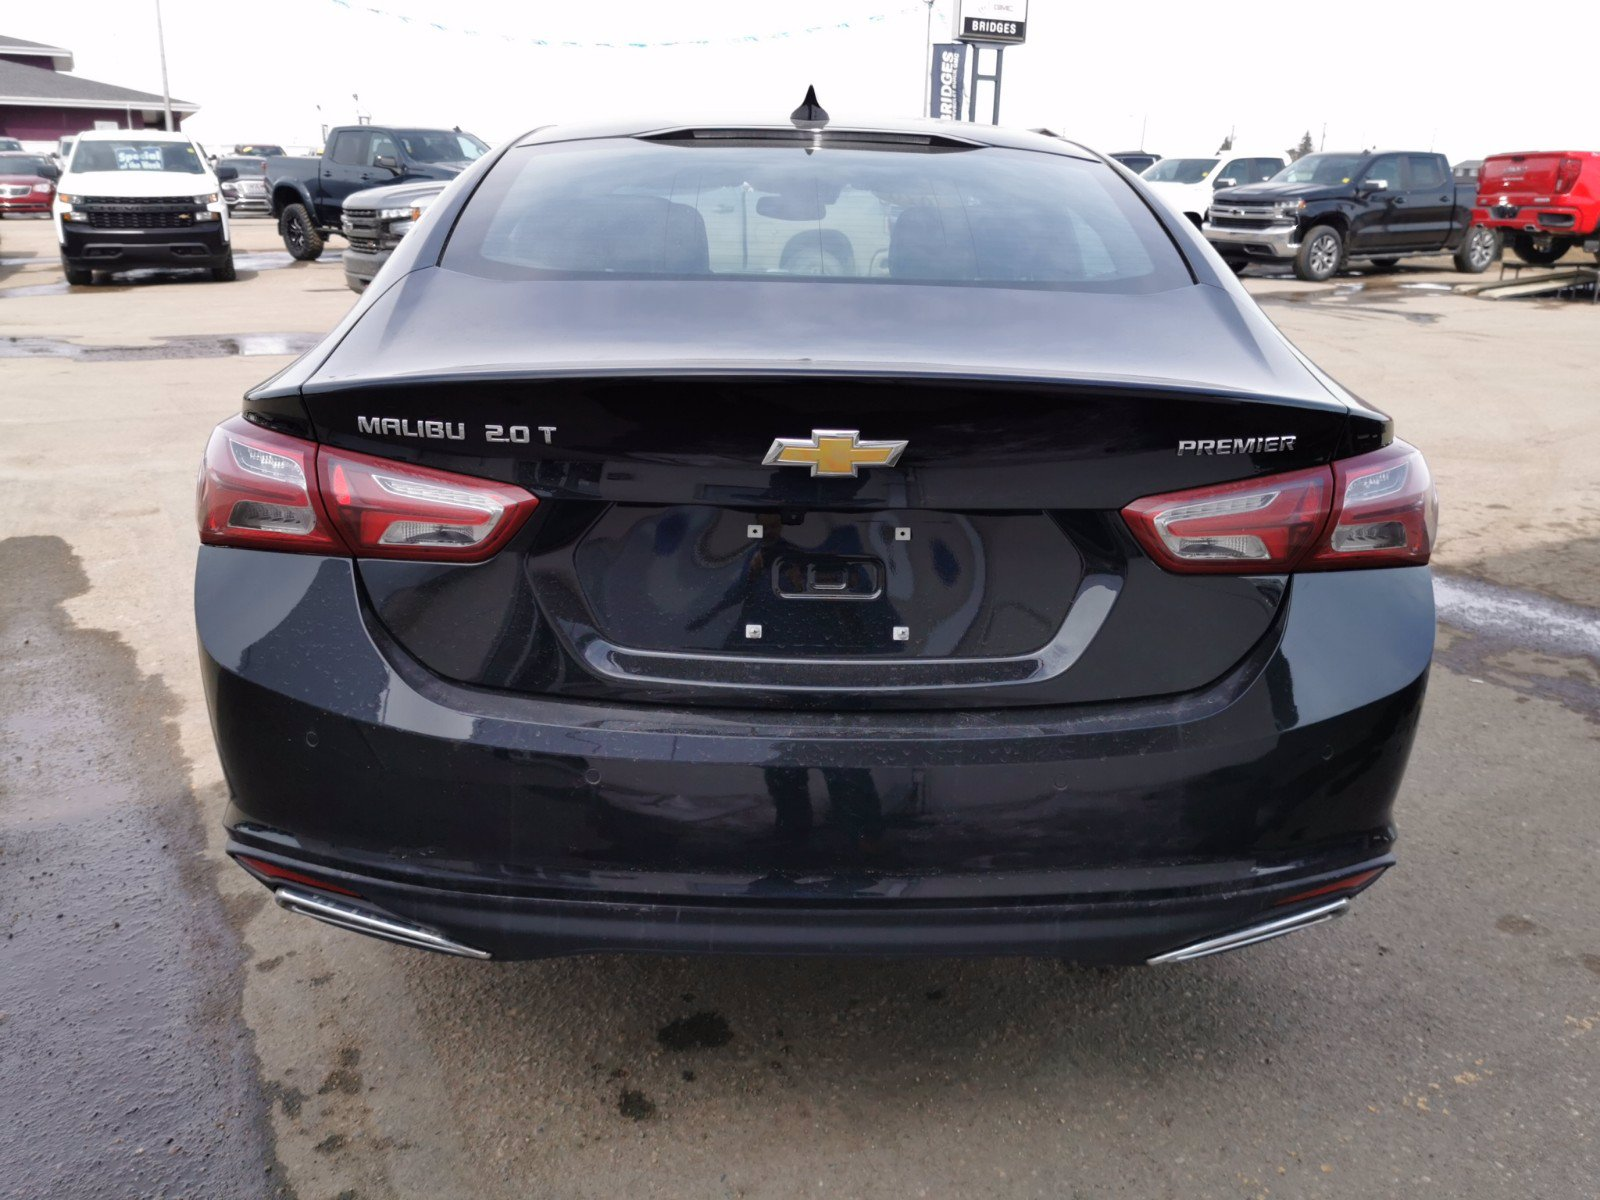 Certified Pre-Owned 2020 Chevrolet Malibu Premier**leather | sunroof | remote start**